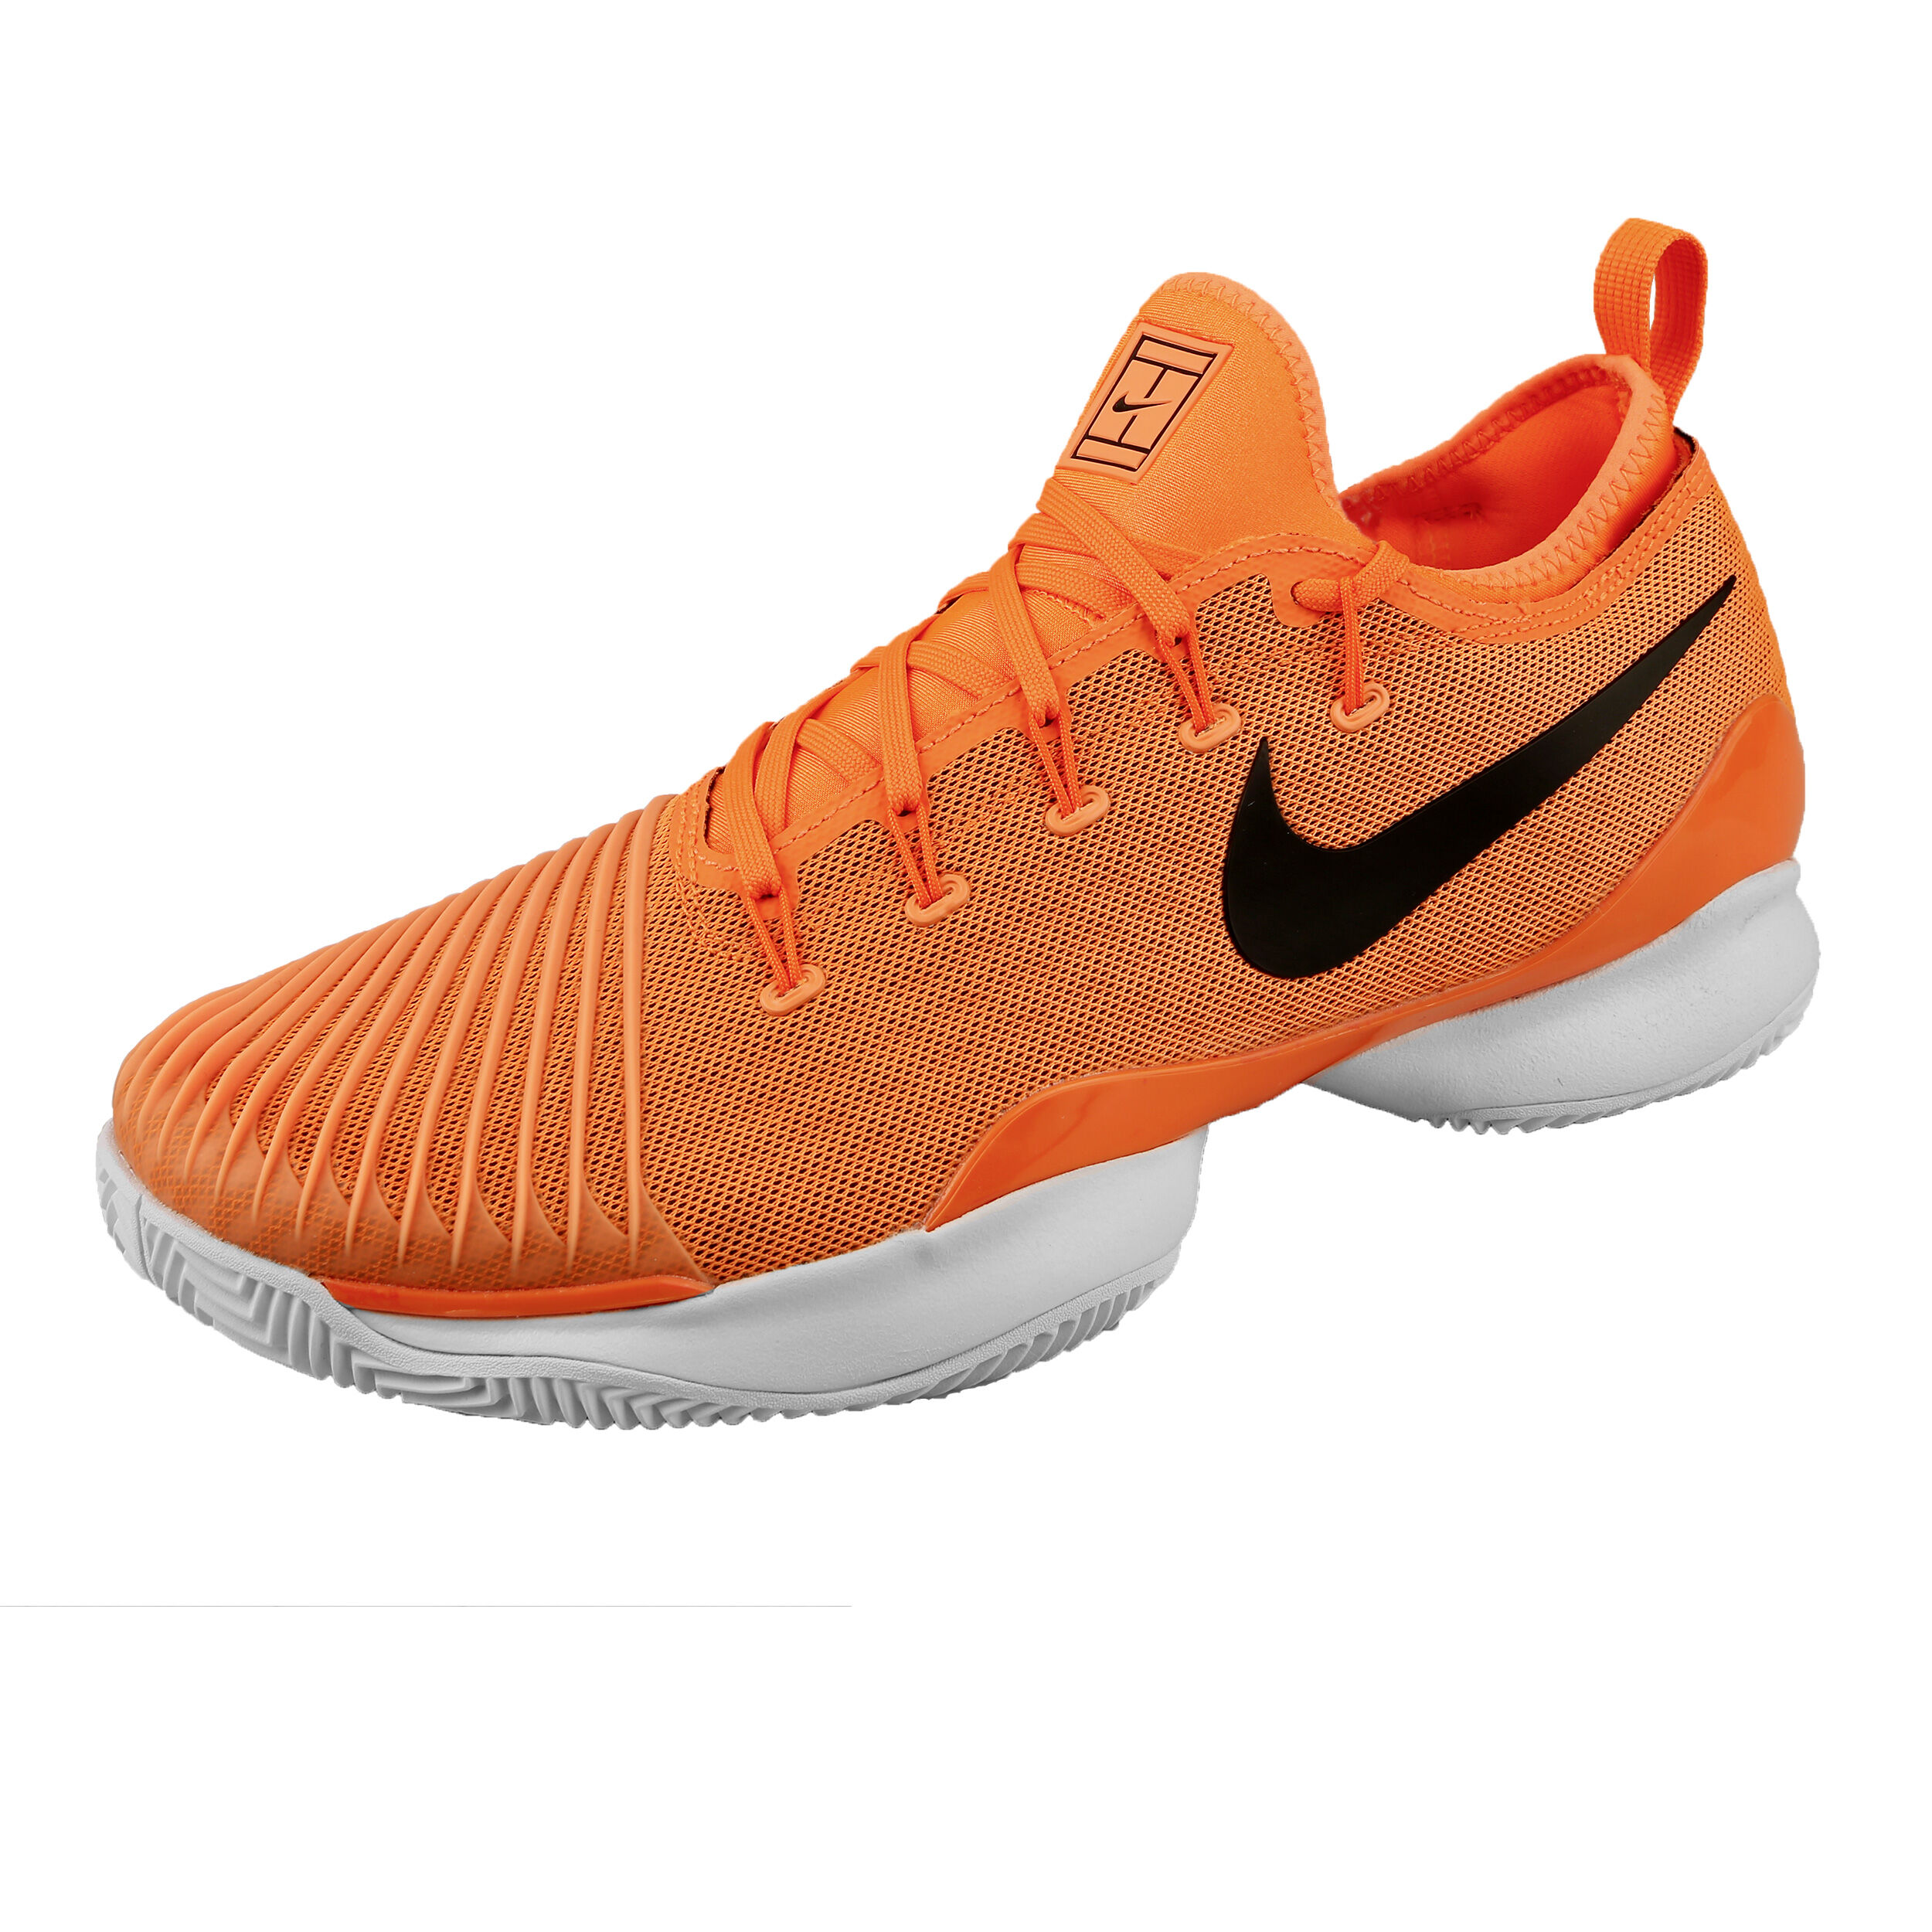 Nike Air Zoom Ultra React Chaussure Terre Battue Hommes Orange , Blanc